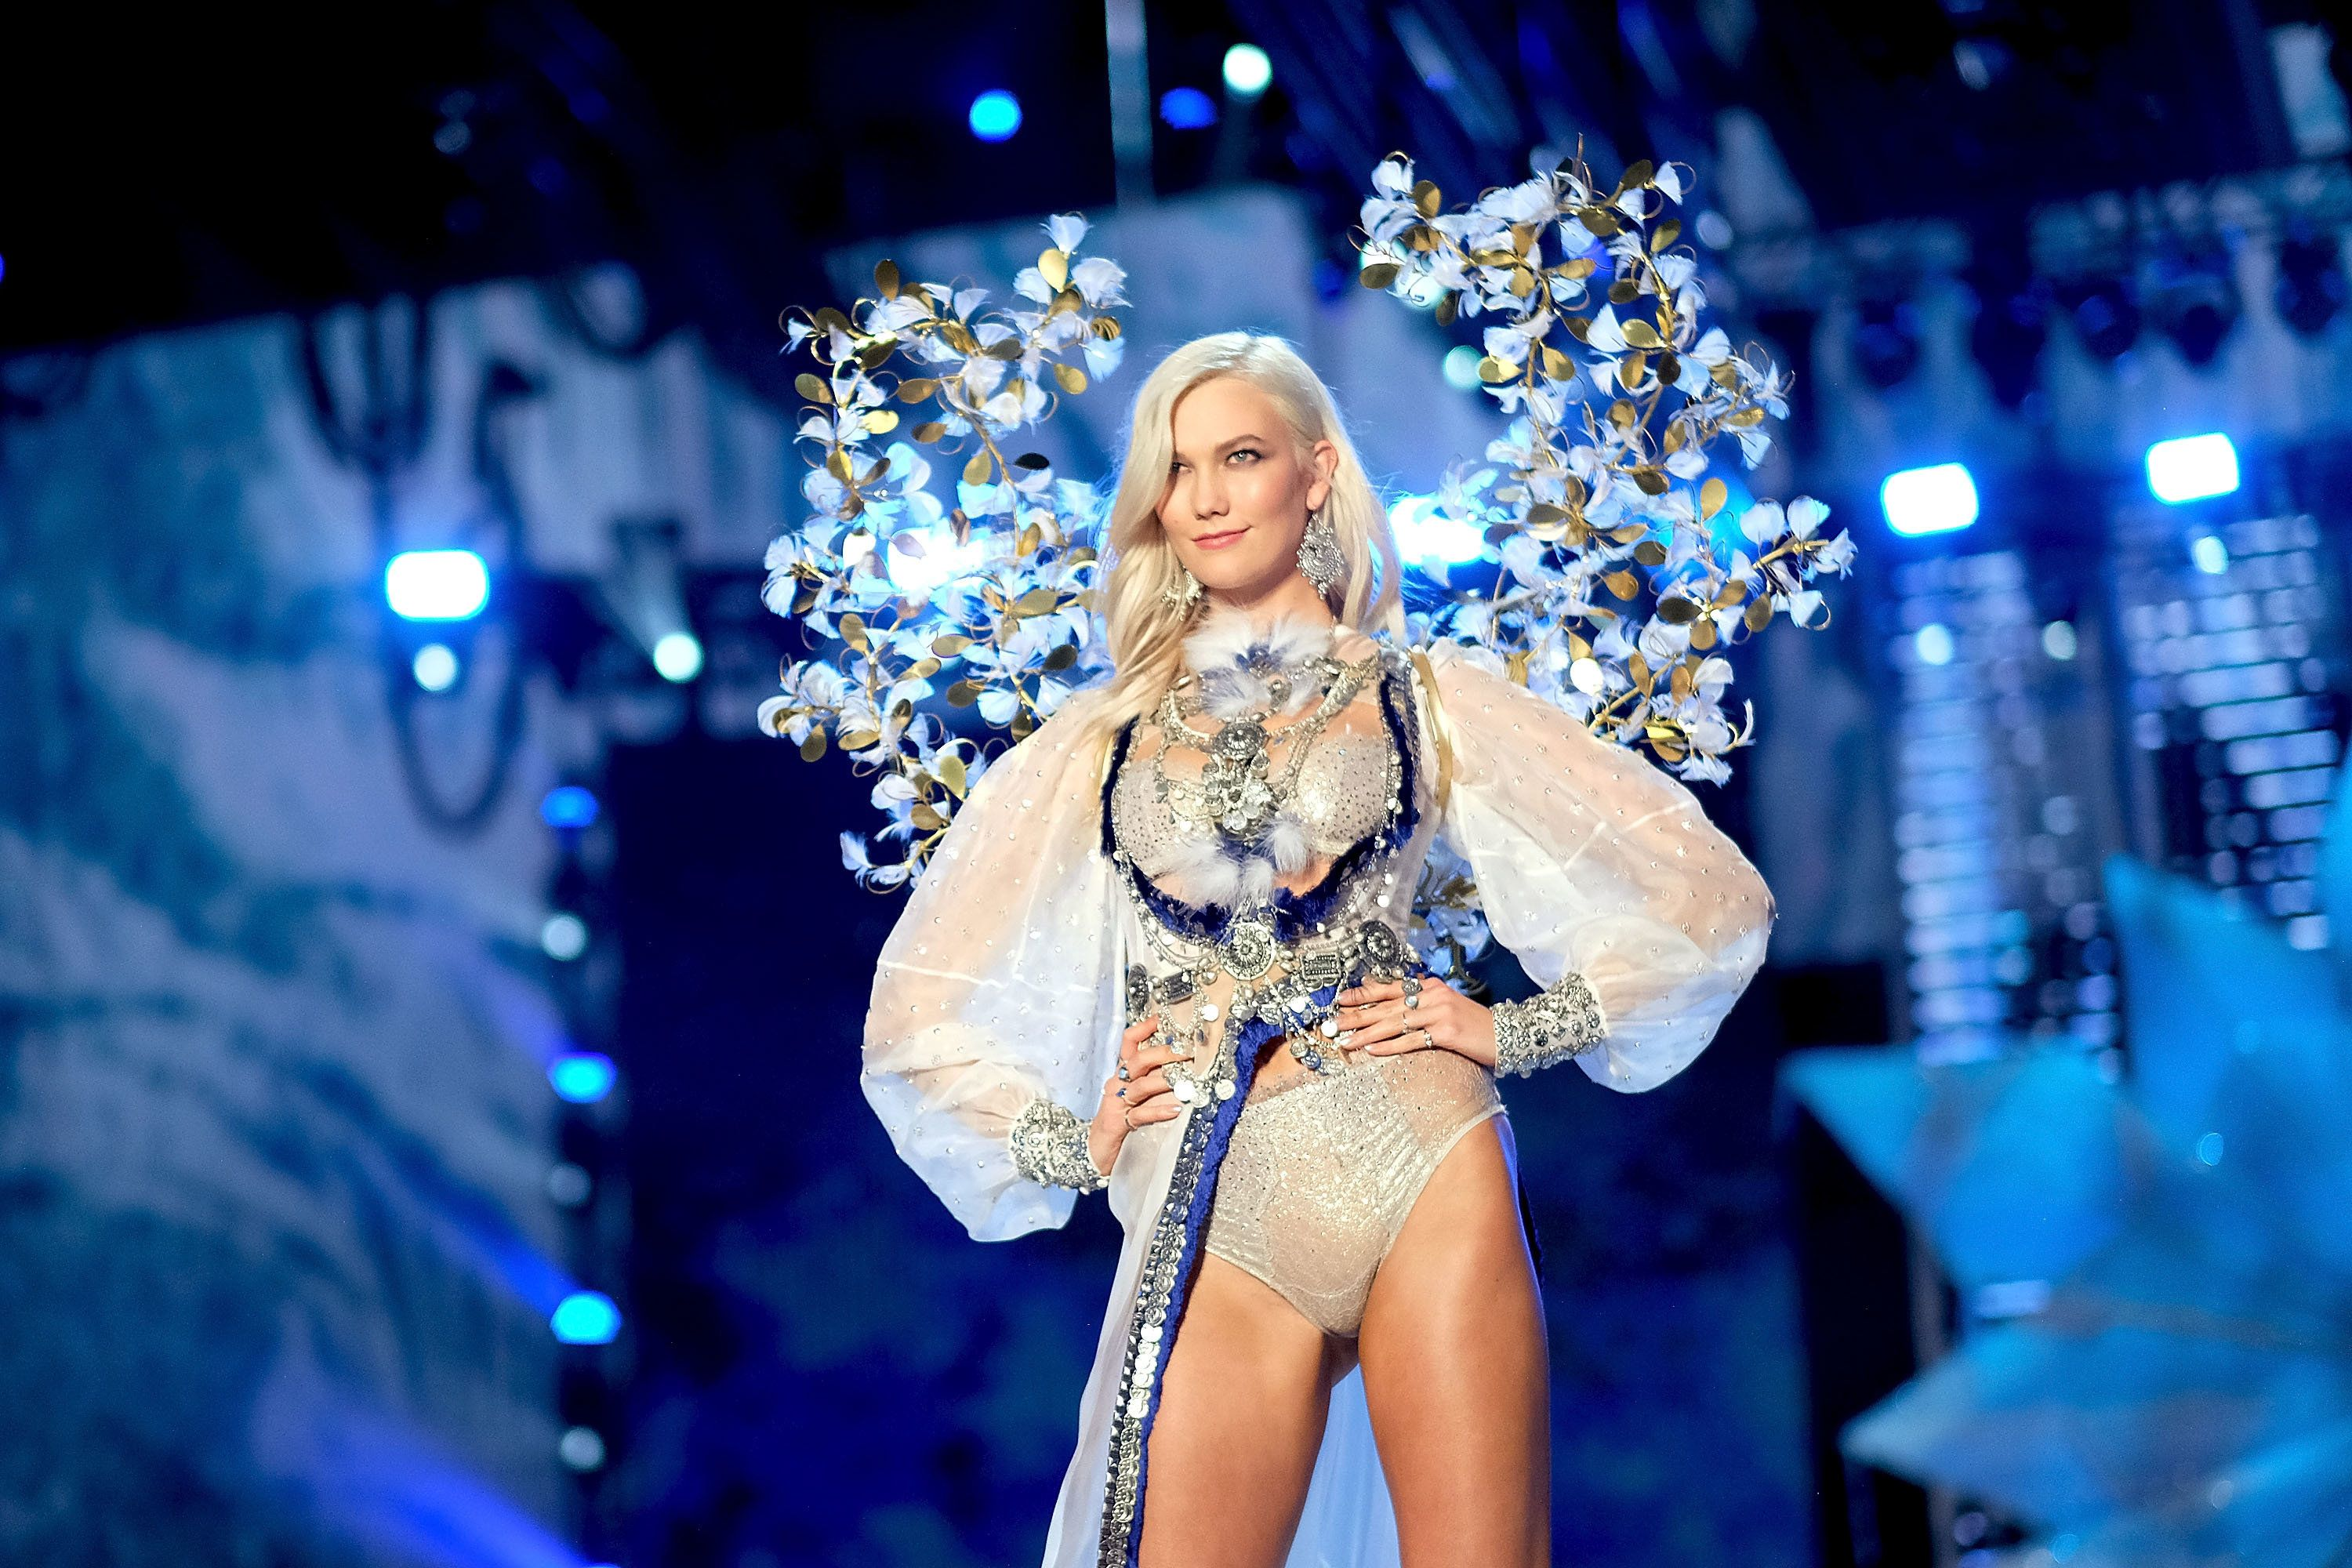 SHANGHAI, CHINA - NOVEMBER 20:  Karlie Kloss walks the runway during the 2017 Victoria's Secret Fashion Show In Shanghai at Mercedes-Benz Arena on November 20, 2017 in Shanghai, China.  (Photo by Matt Winkelmeyer/Getty Images for Victoria's Secret)